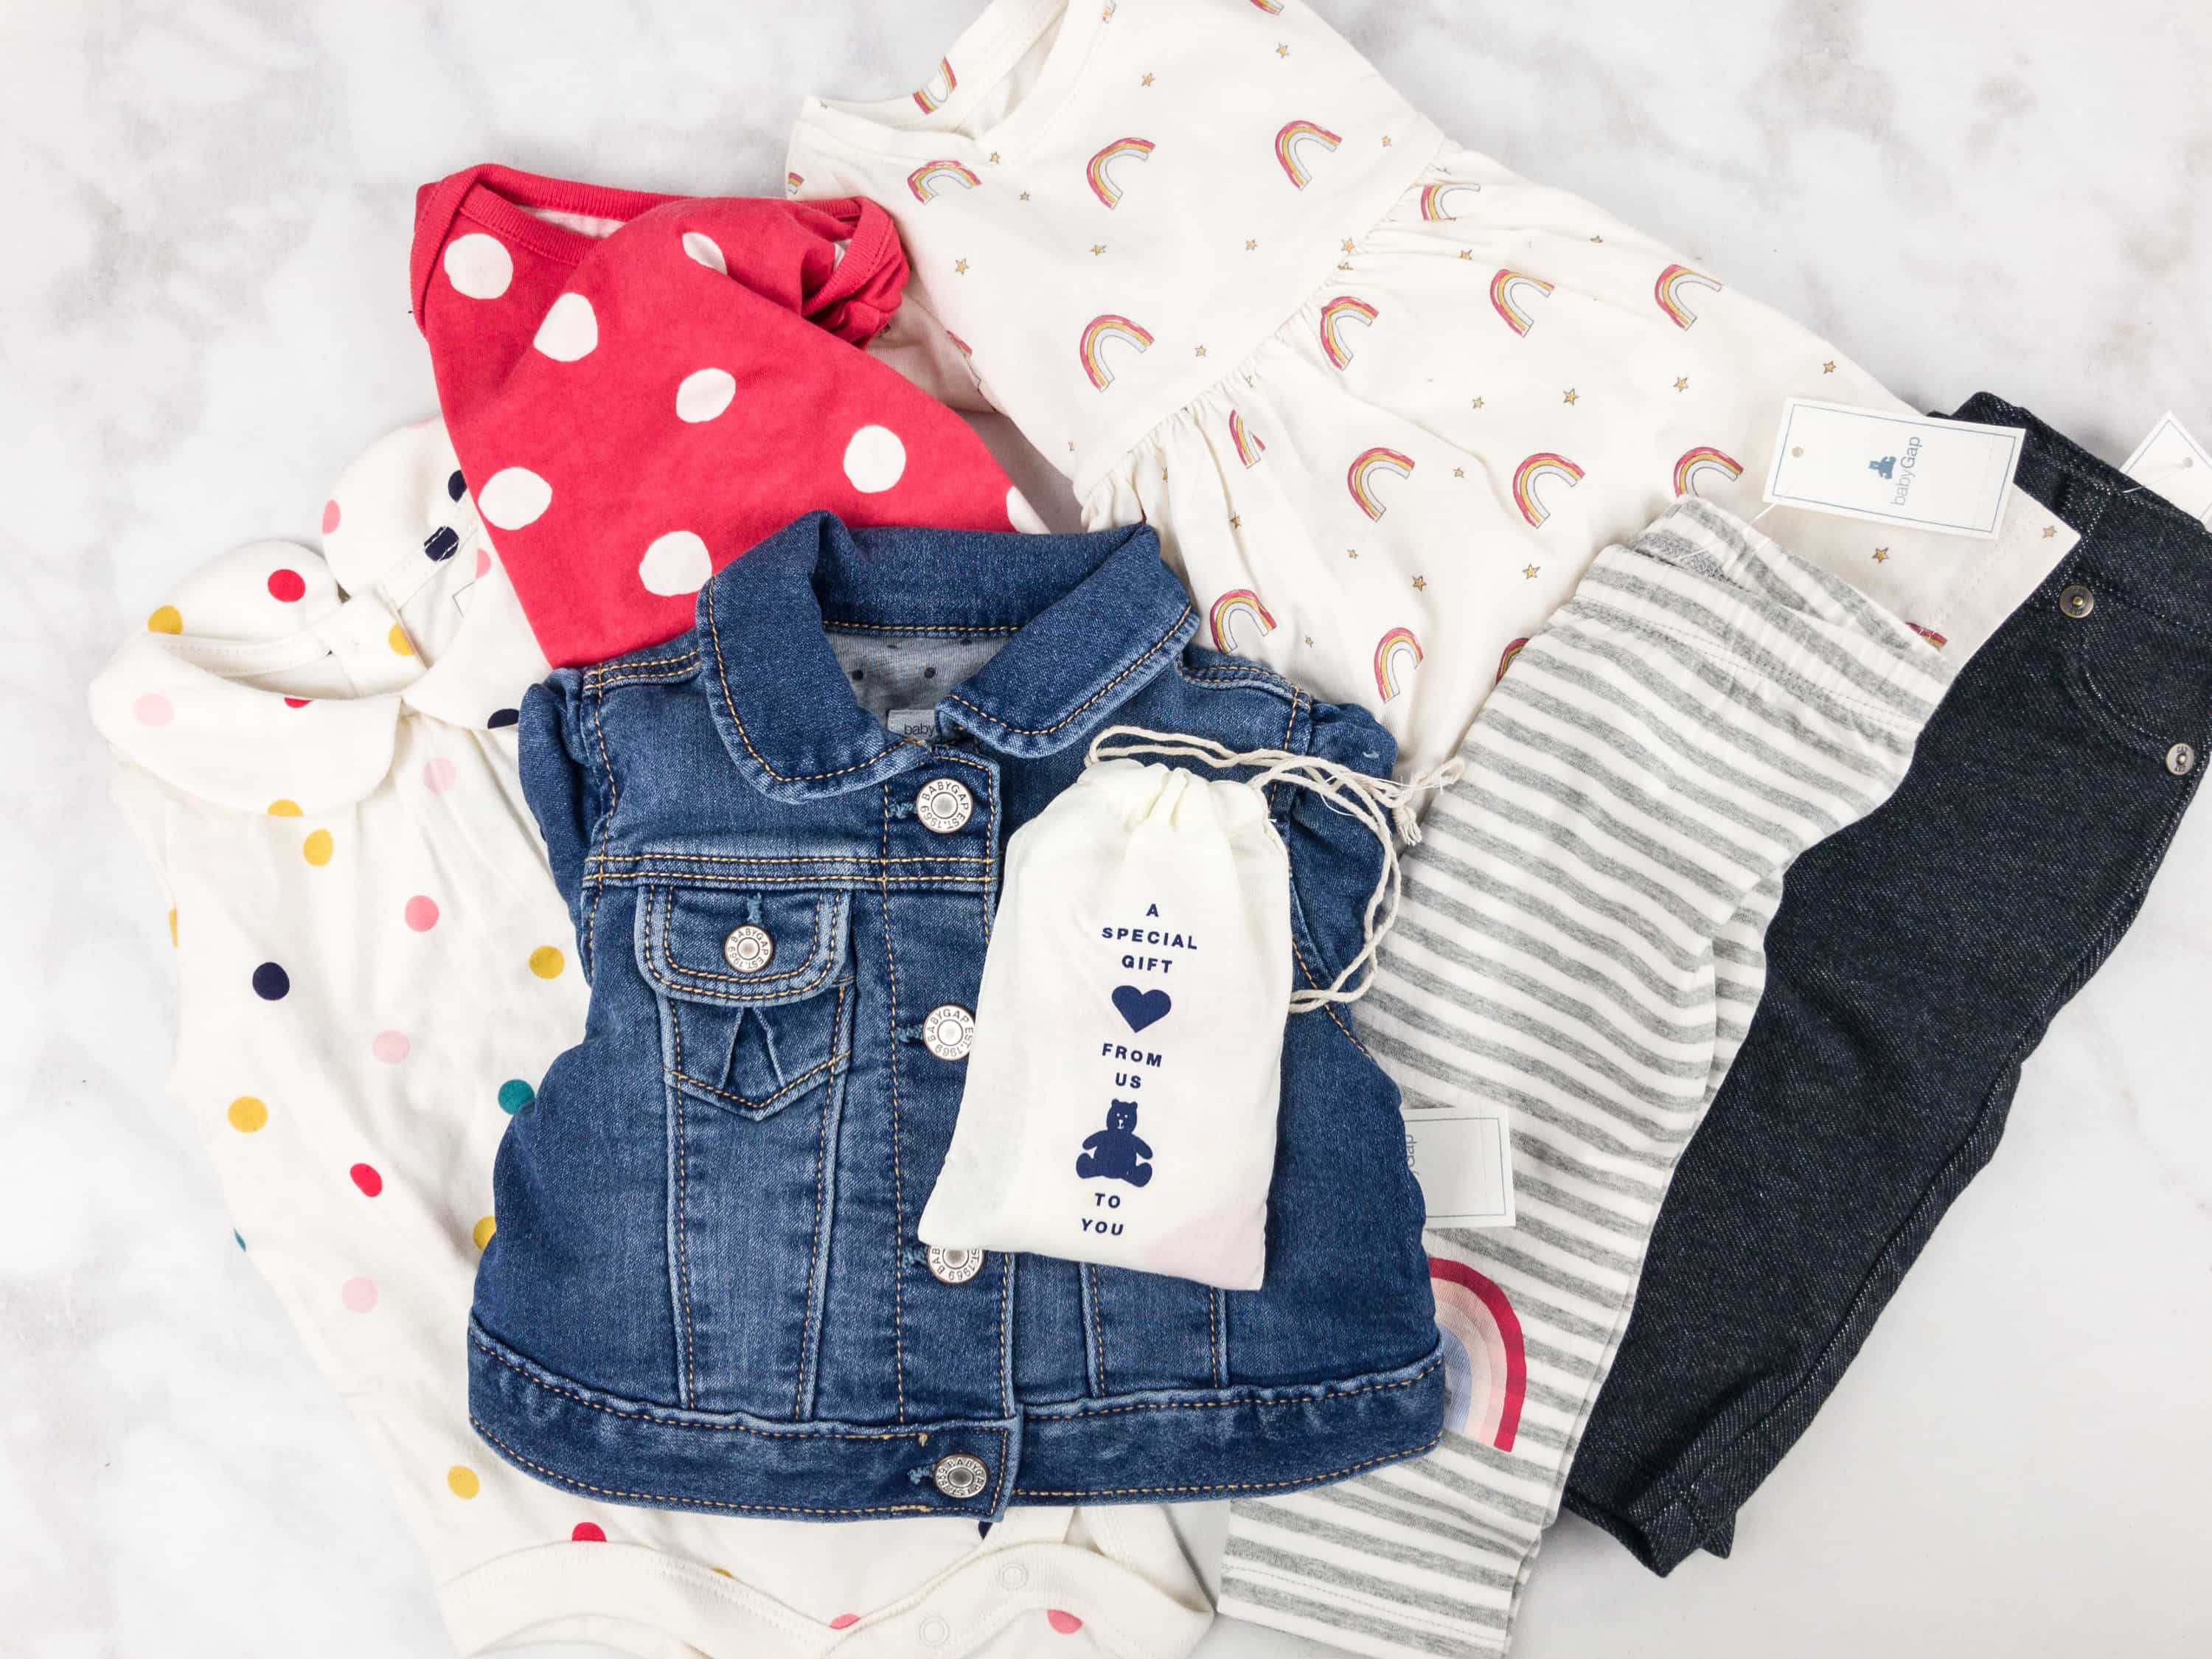 3b89fb39a24c babyGap OutfitBox Fall 2017 Subscription Box Review - hello subscription